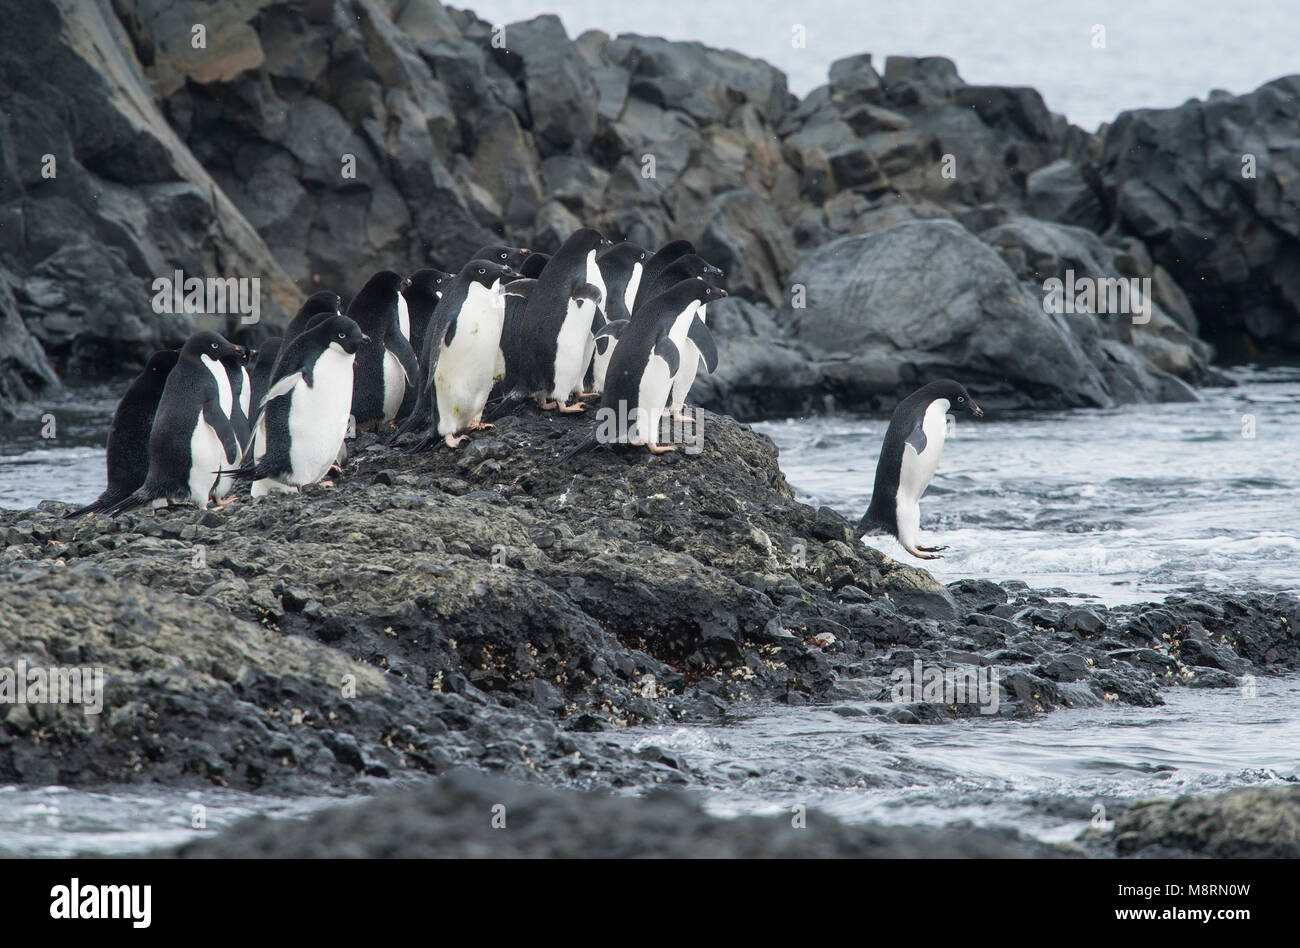 A group of Adelie penguins make their way to the ocean at Brown Bluff, Antarctica. - Stock Image